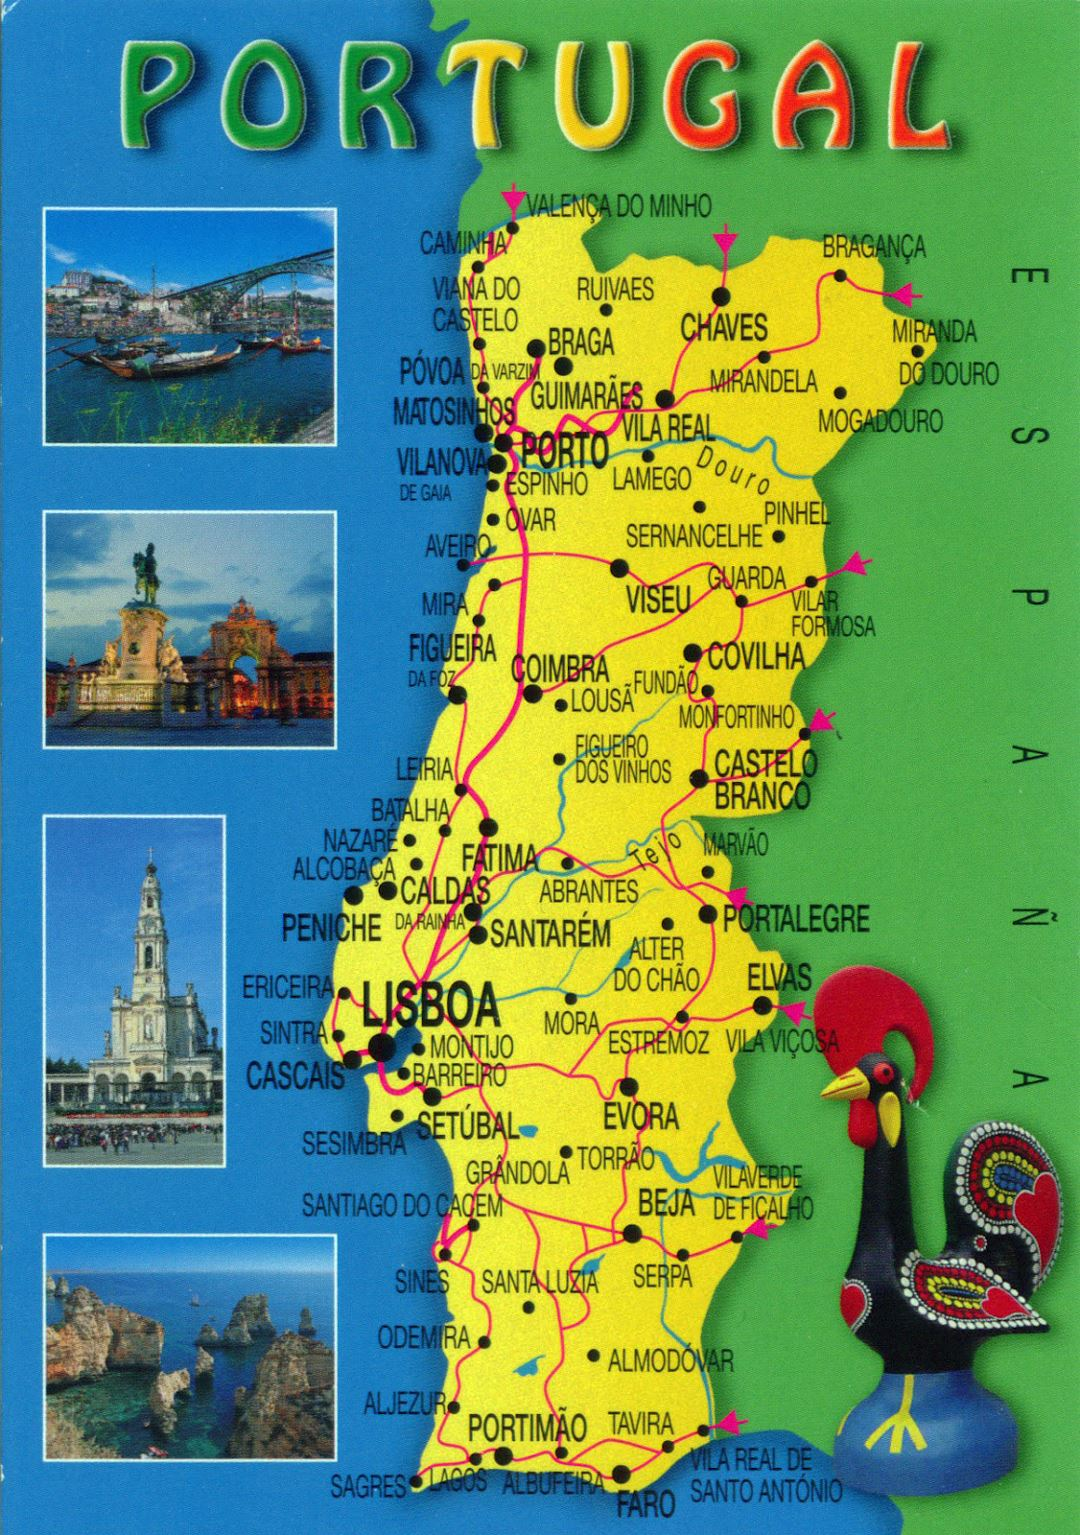 Large tourist map of Portugal with roads and cities